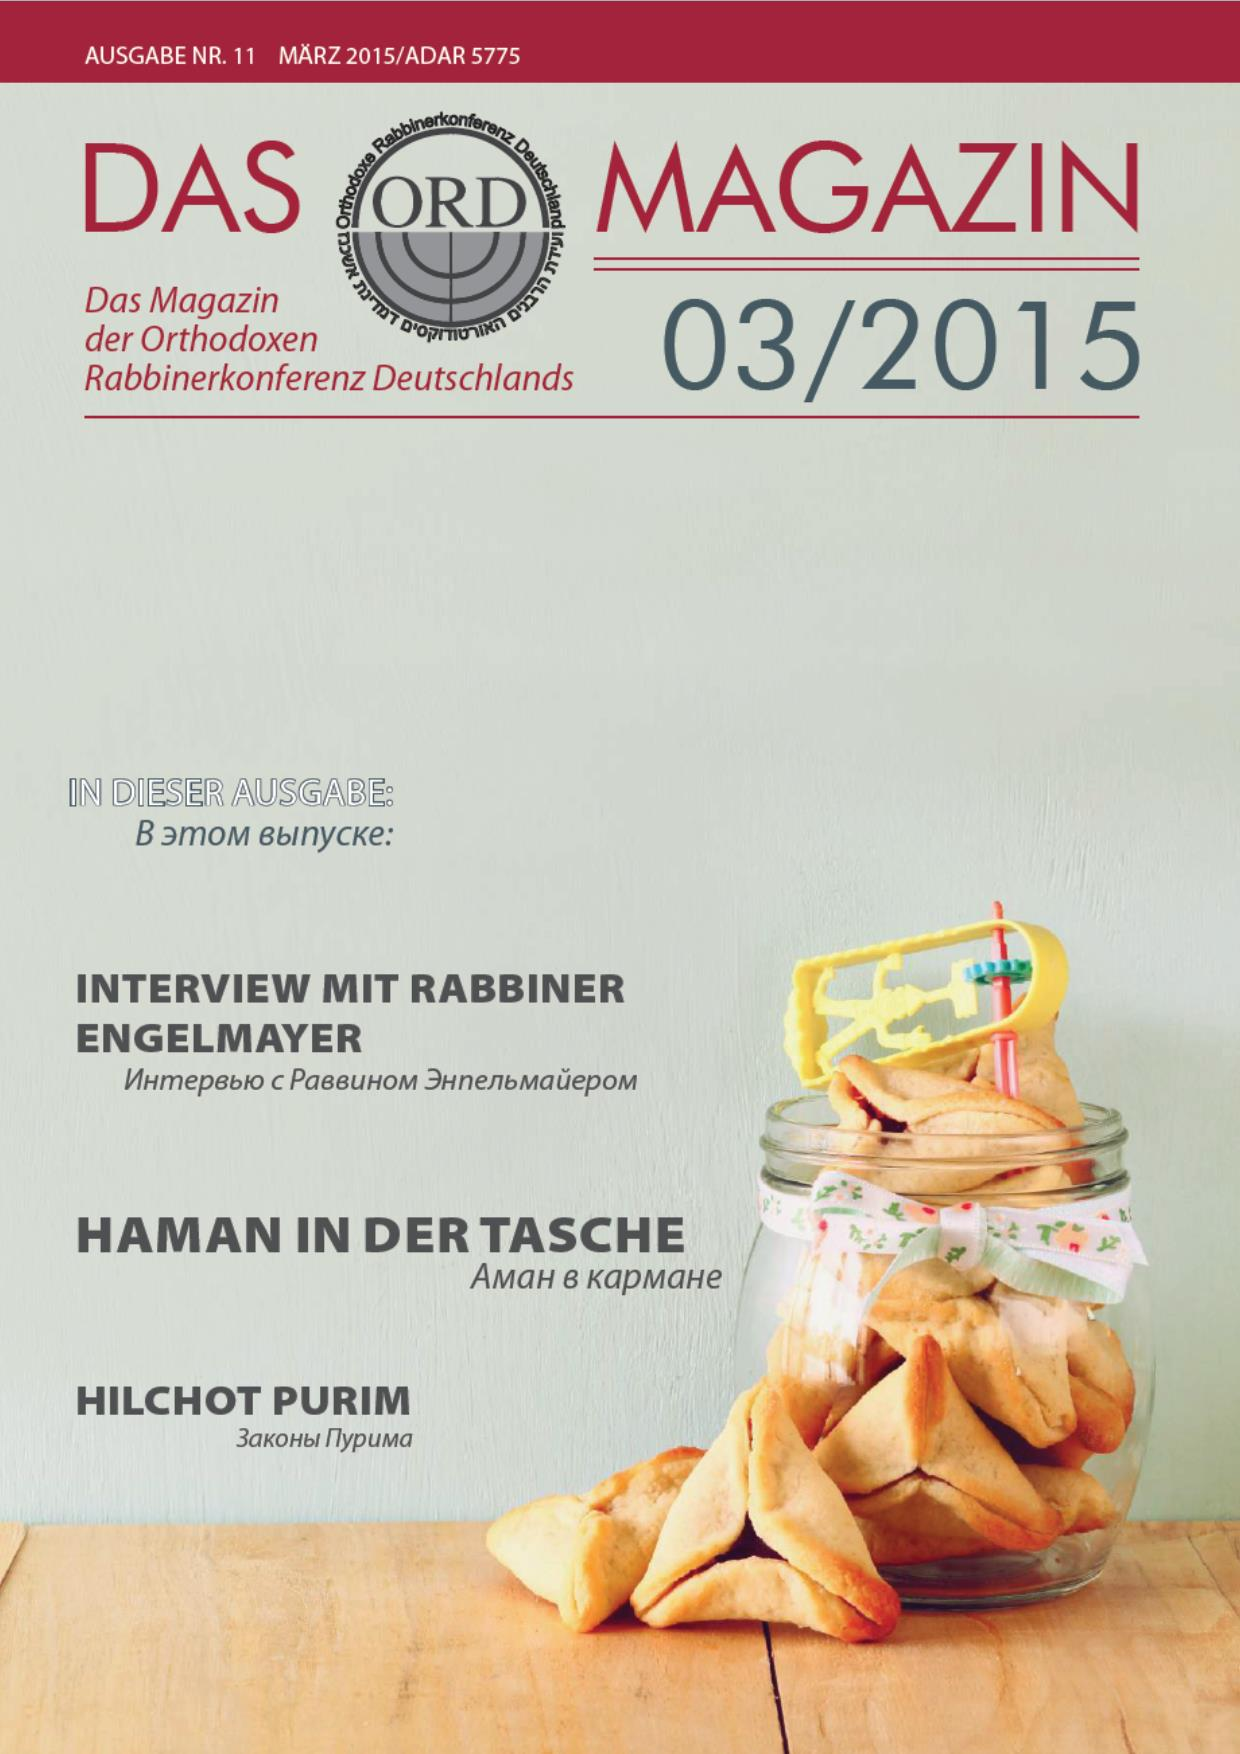 ORD Magazin 03/2015 Cover